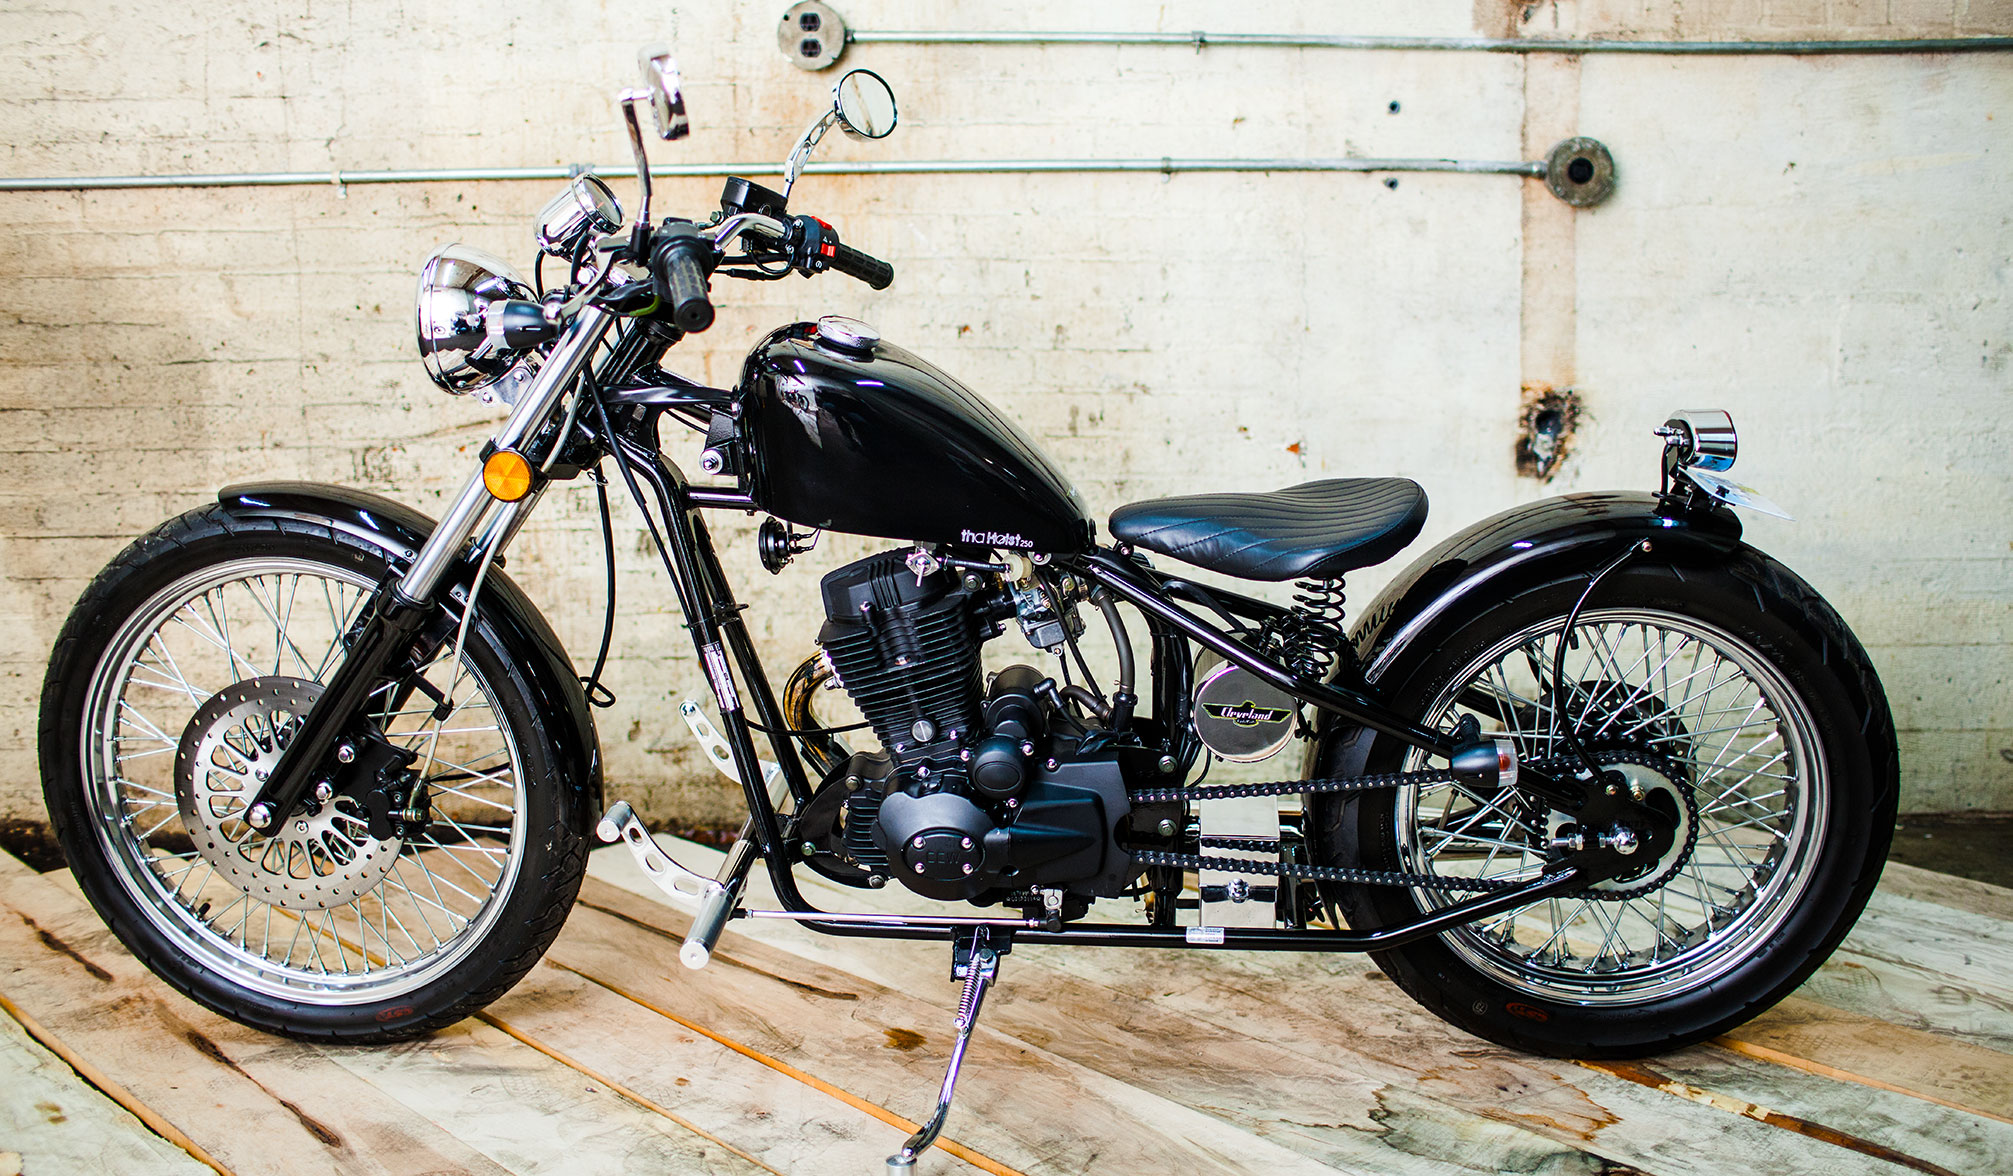 Cleveland CycleWerks Misfit 2014 images #70415